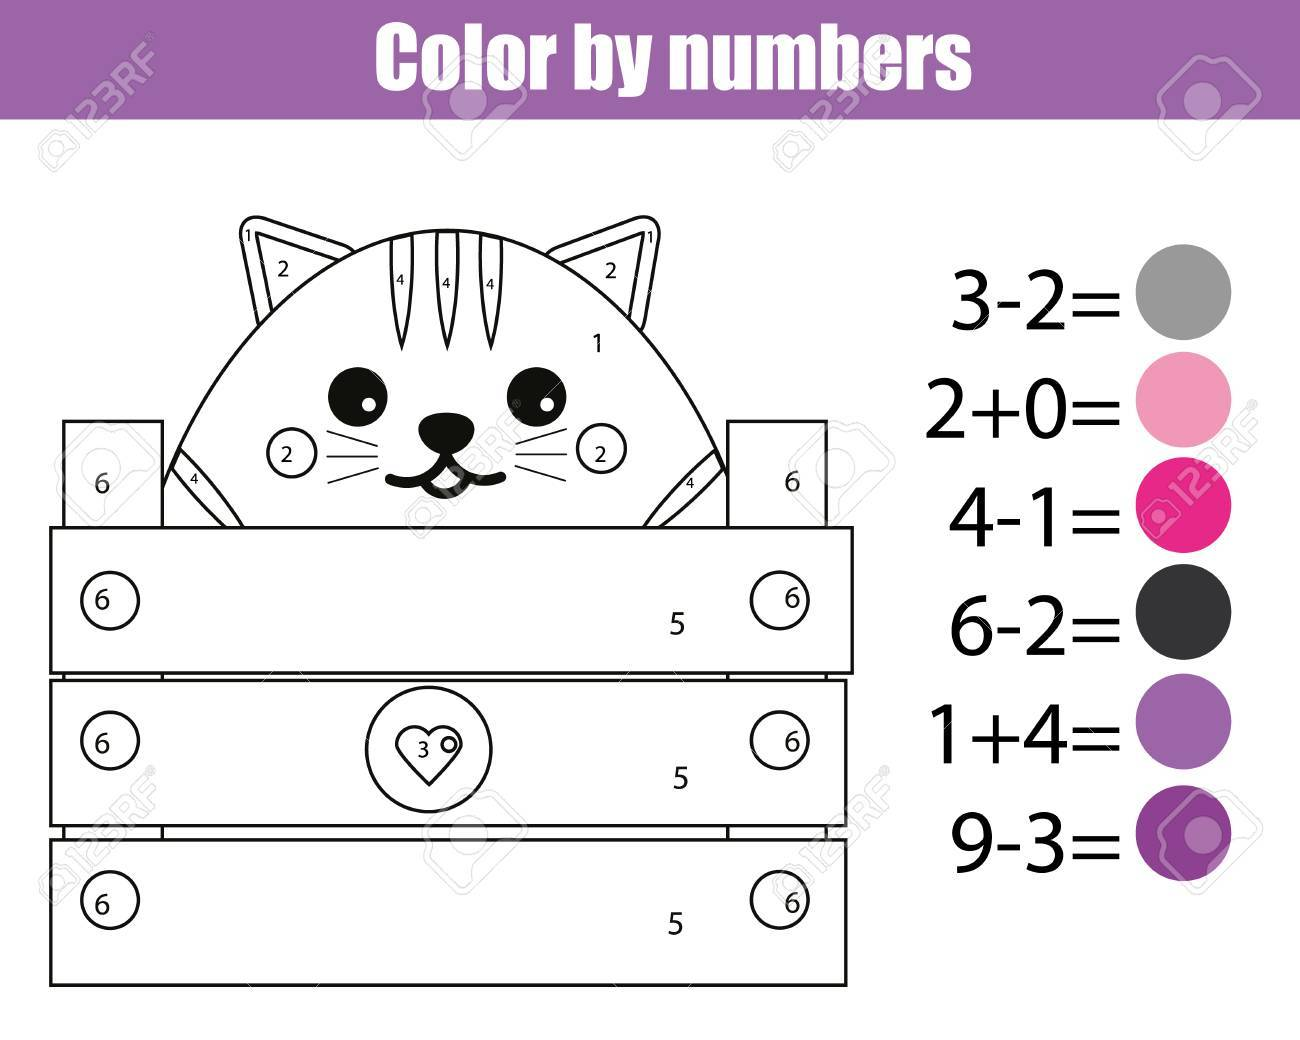 Coloring Page With Cute Cat Character Color By Numbers Educational Children Game Drawing Kids